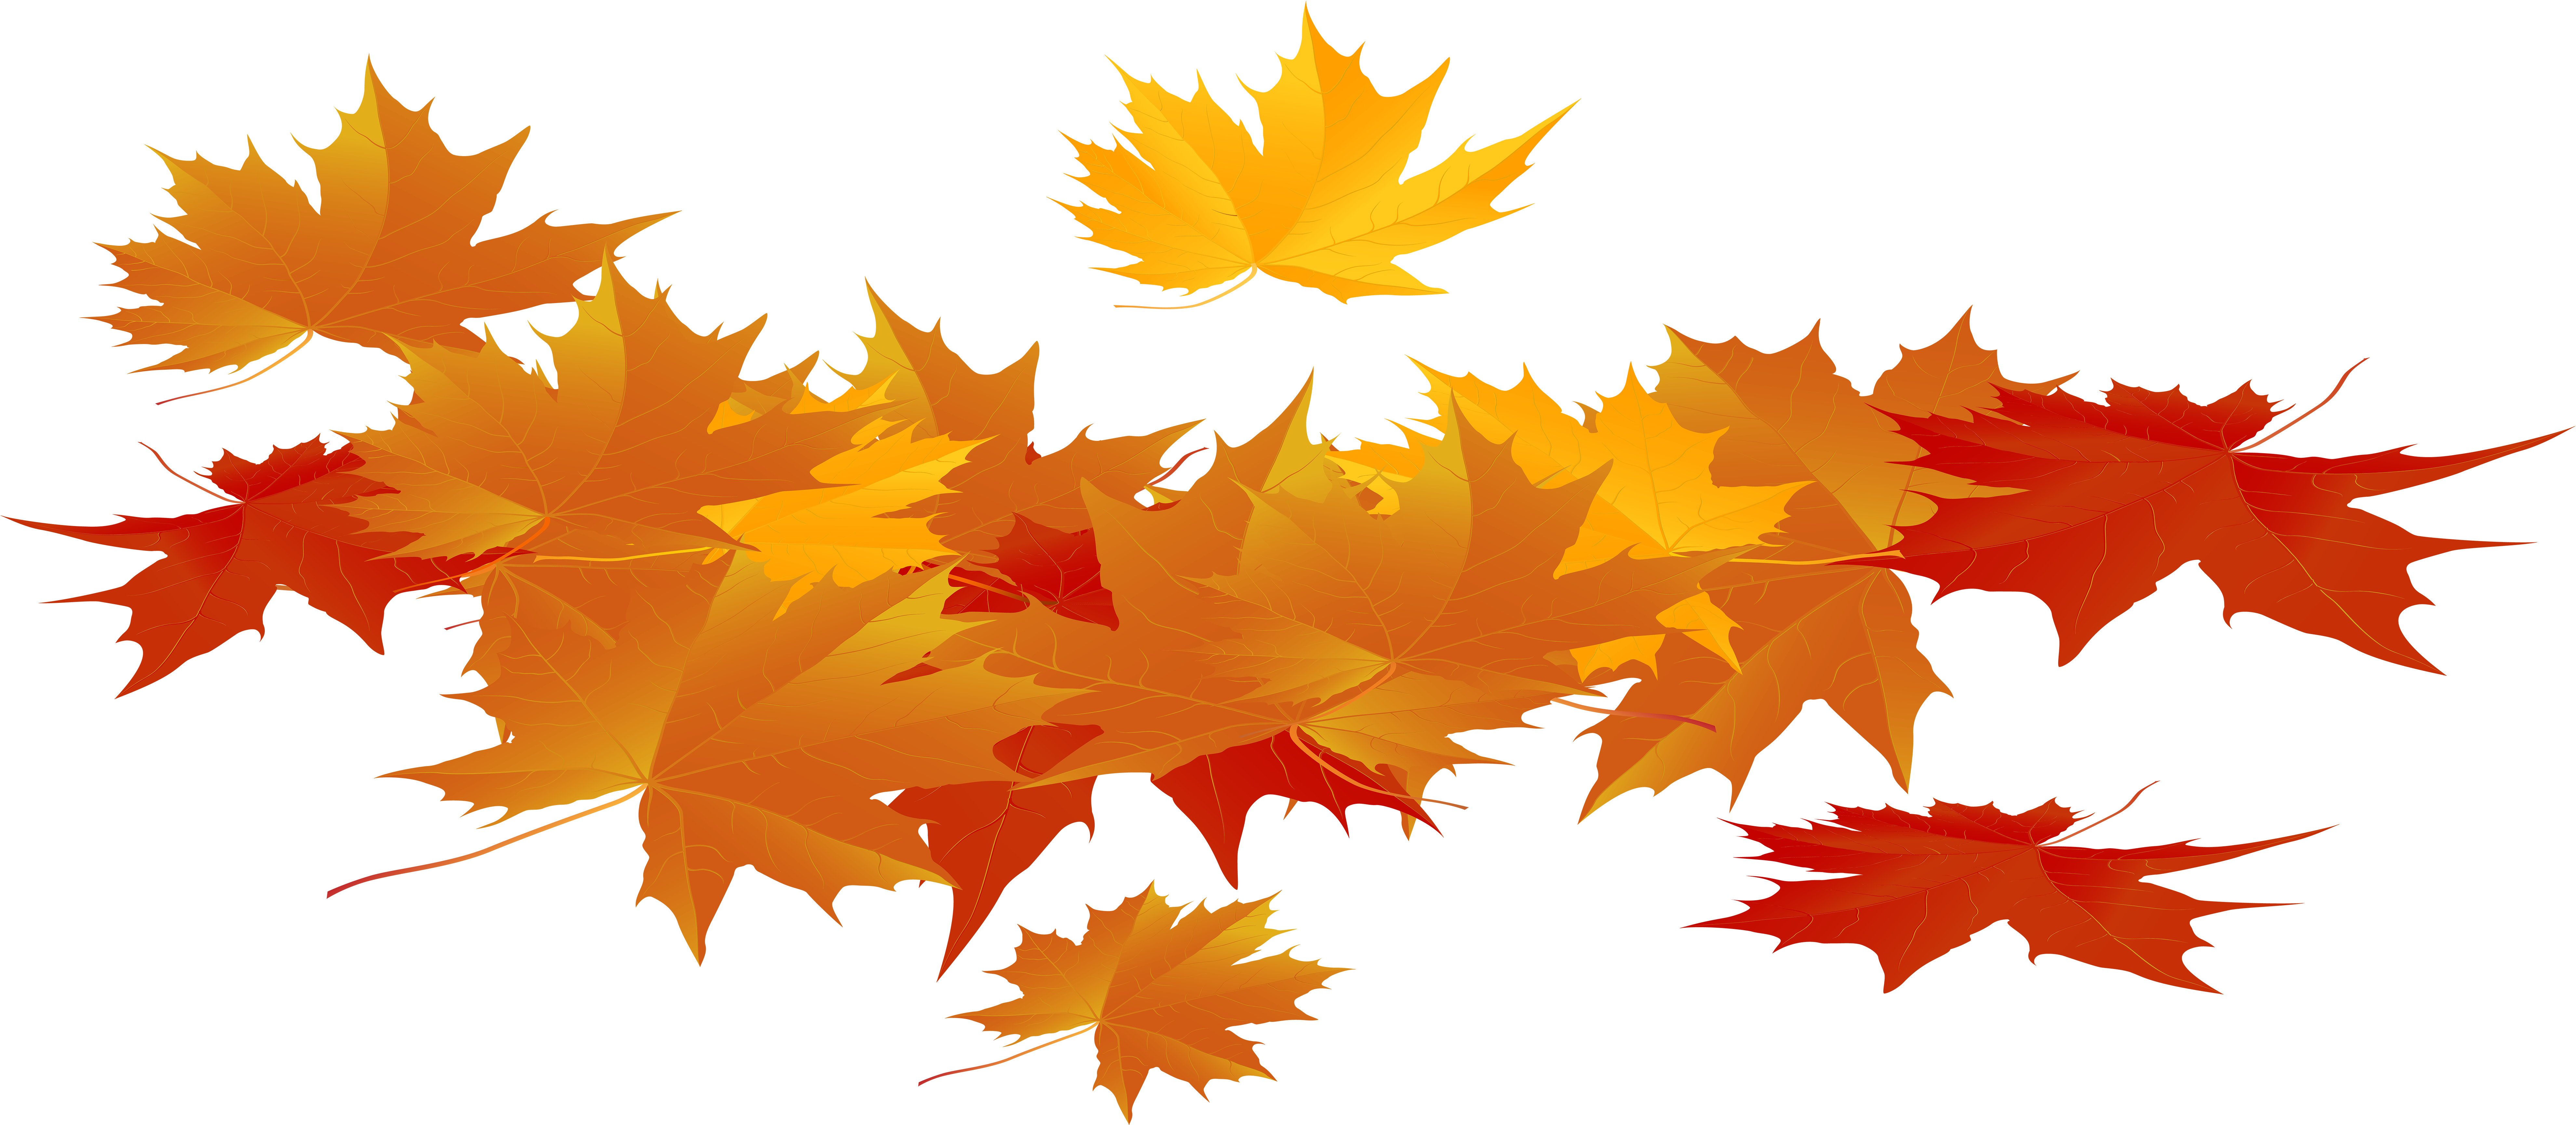 Thanksgiving Leaves Png Autumn Leaves Png Transparent Cartoon Jing Fm